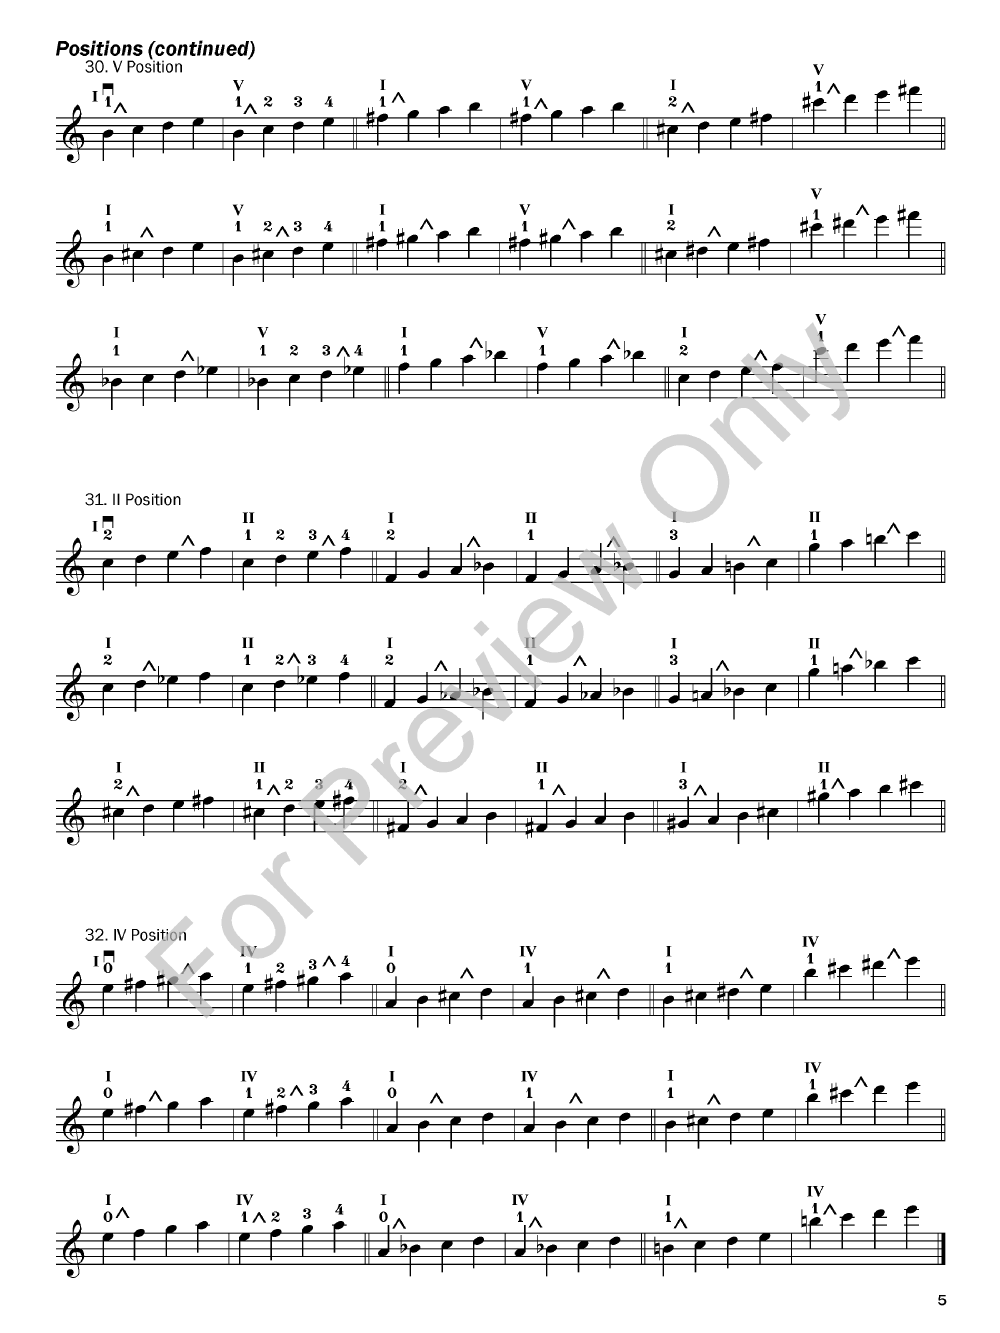 Expressive techniques for orchestra violin jw pepper sheet music brungard alexander dackow anderson tempo press fandeluxe Gallery